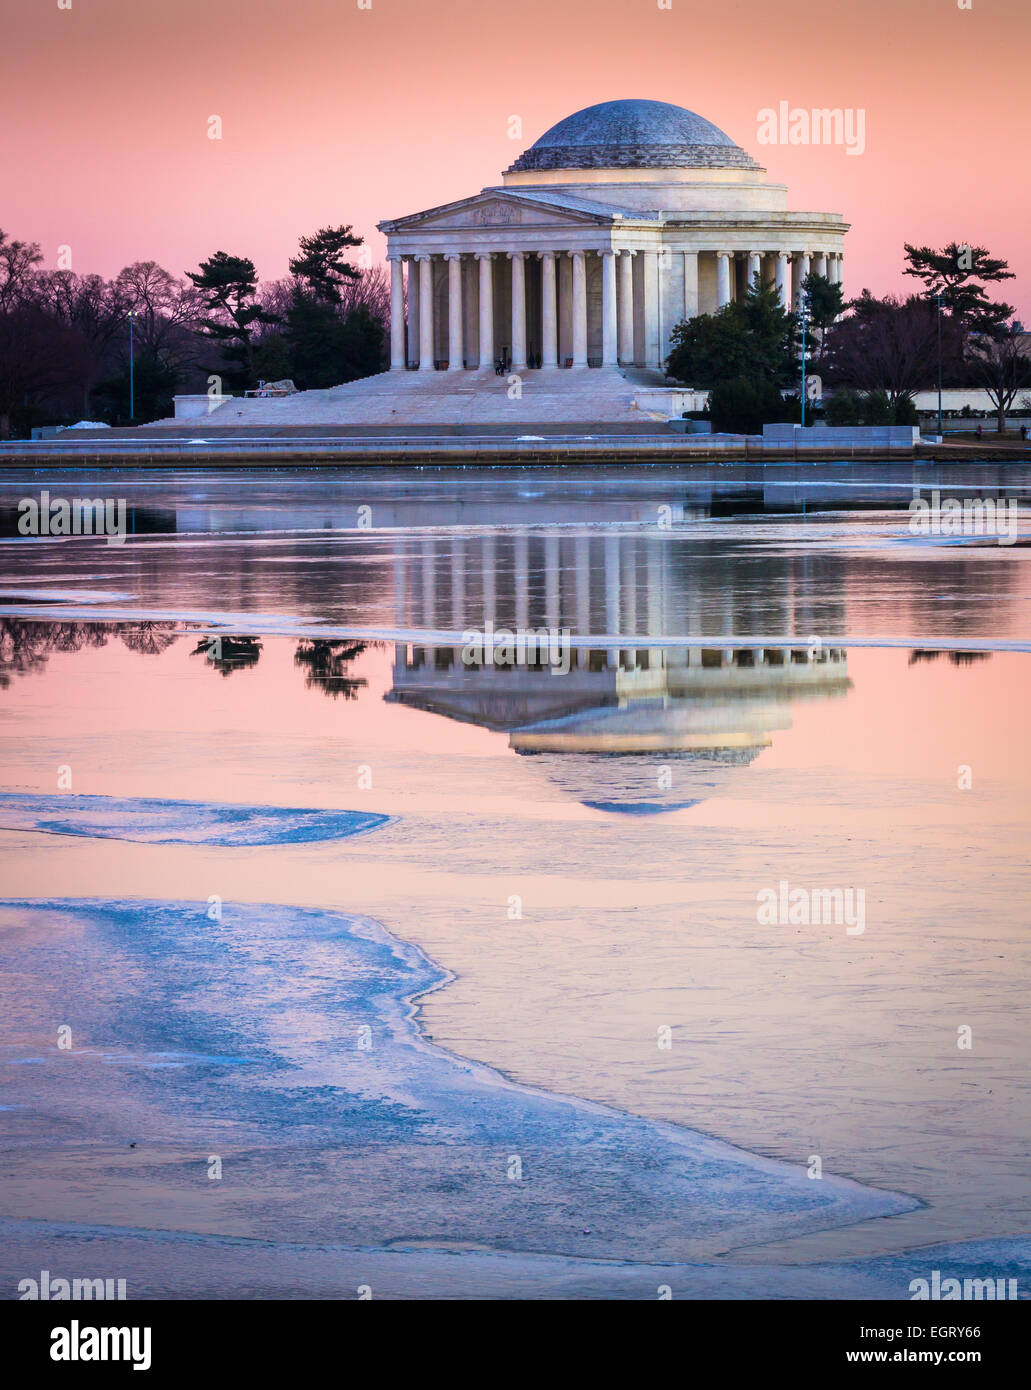 Le Thomas Jefferson Memorial à Washington, D.C. est dédié à Thomas Jefferson, le troisième Photo Stock